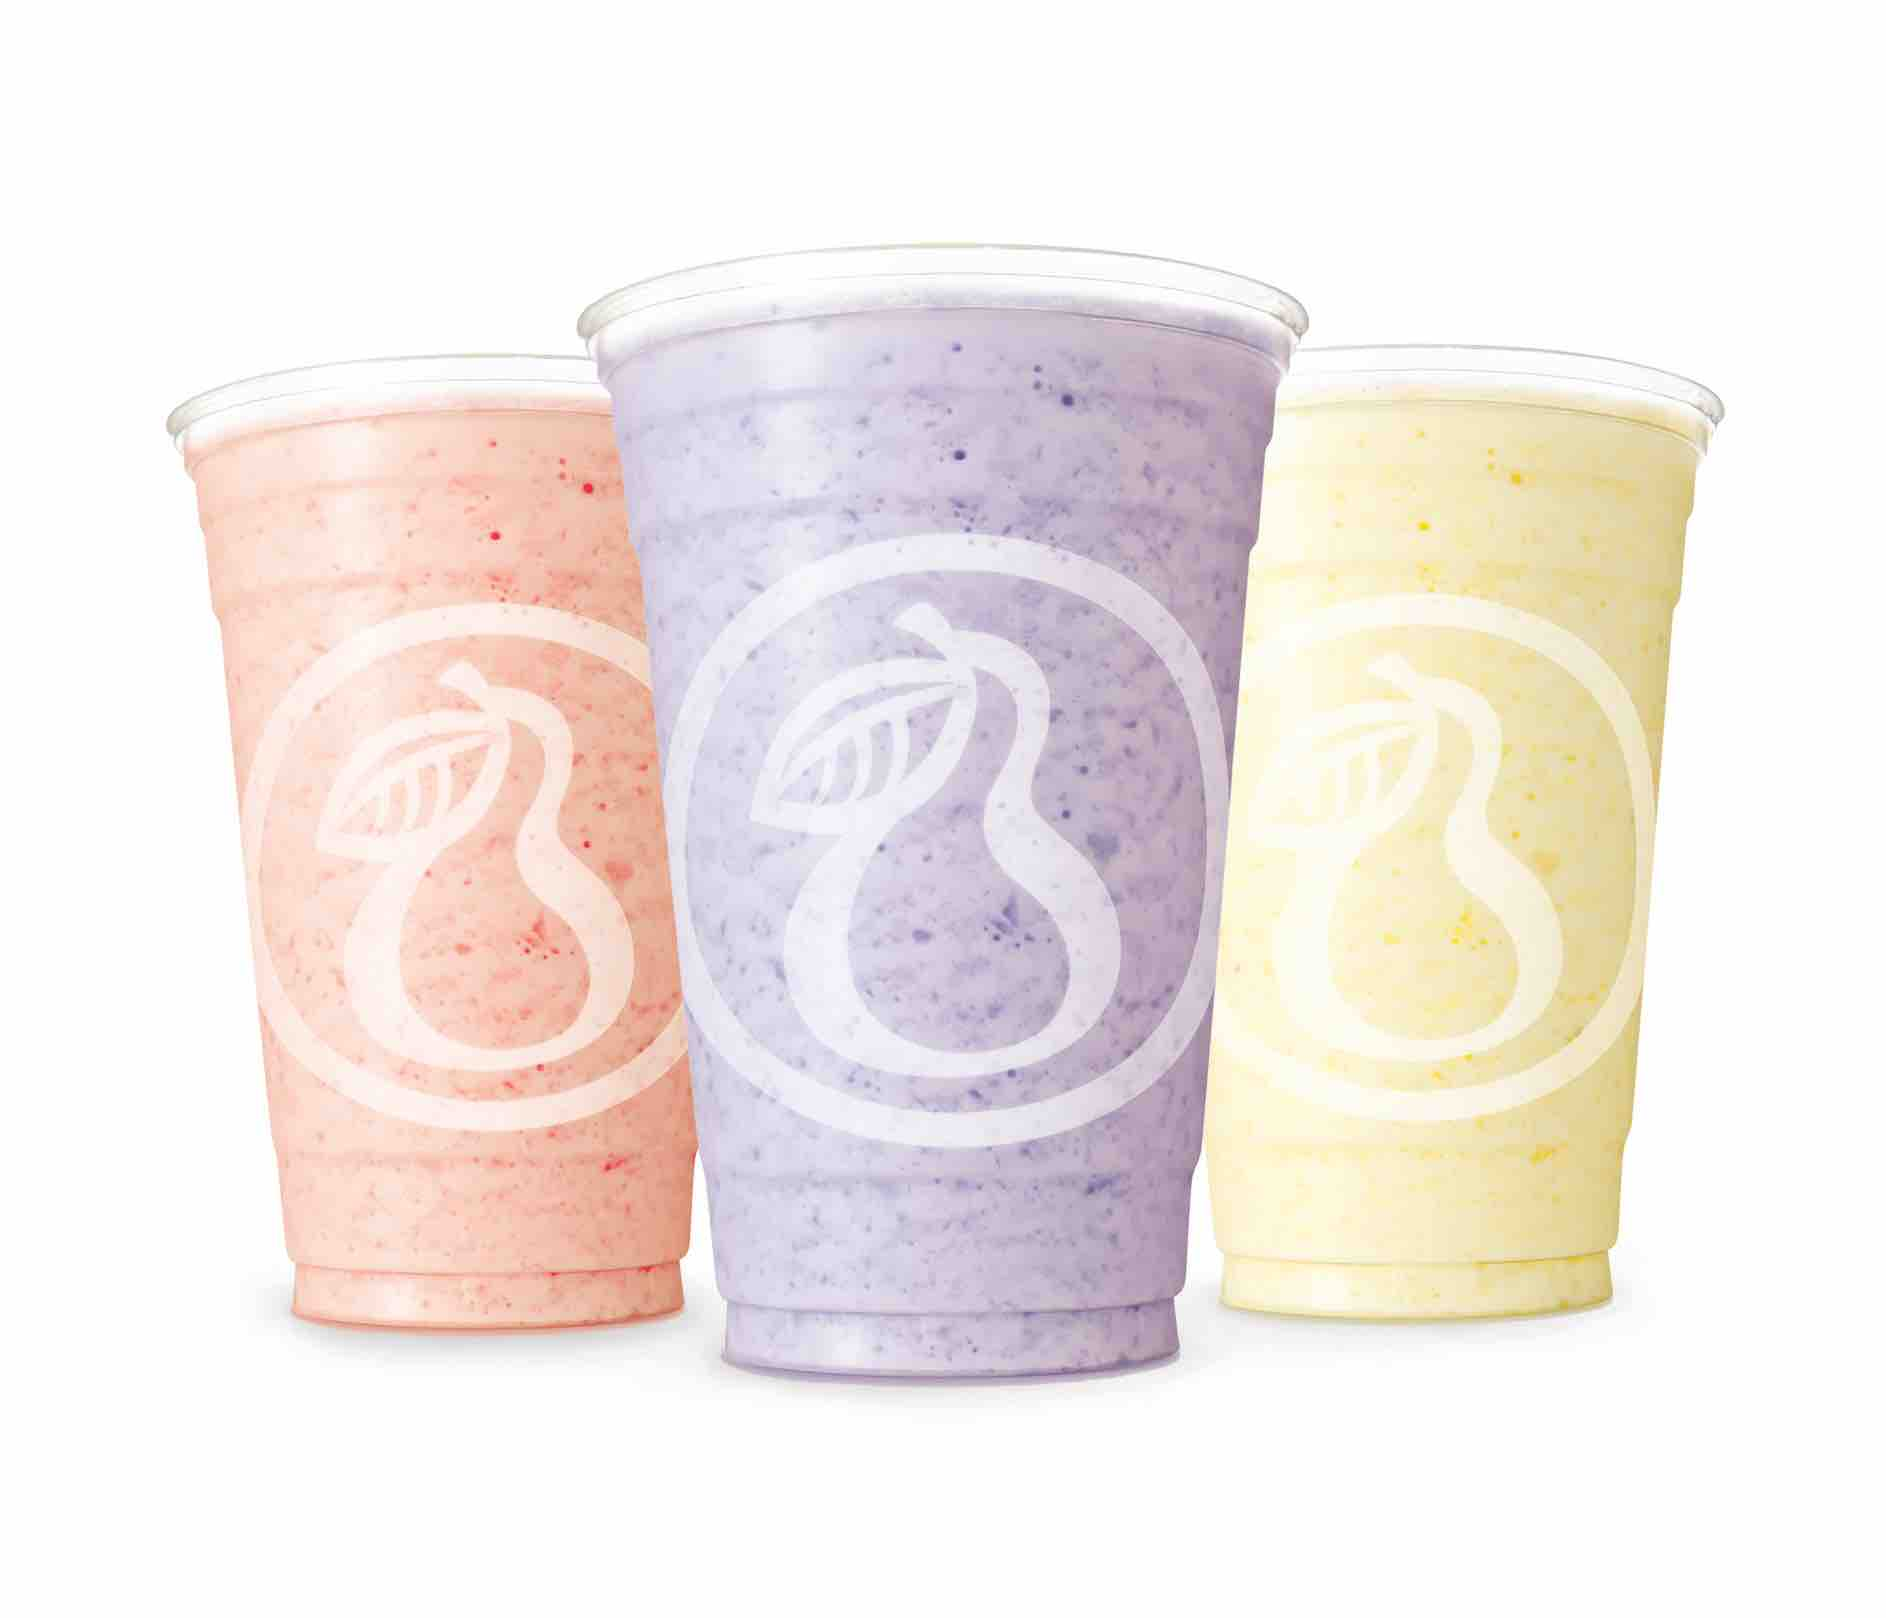 25% off Cycle Shakes